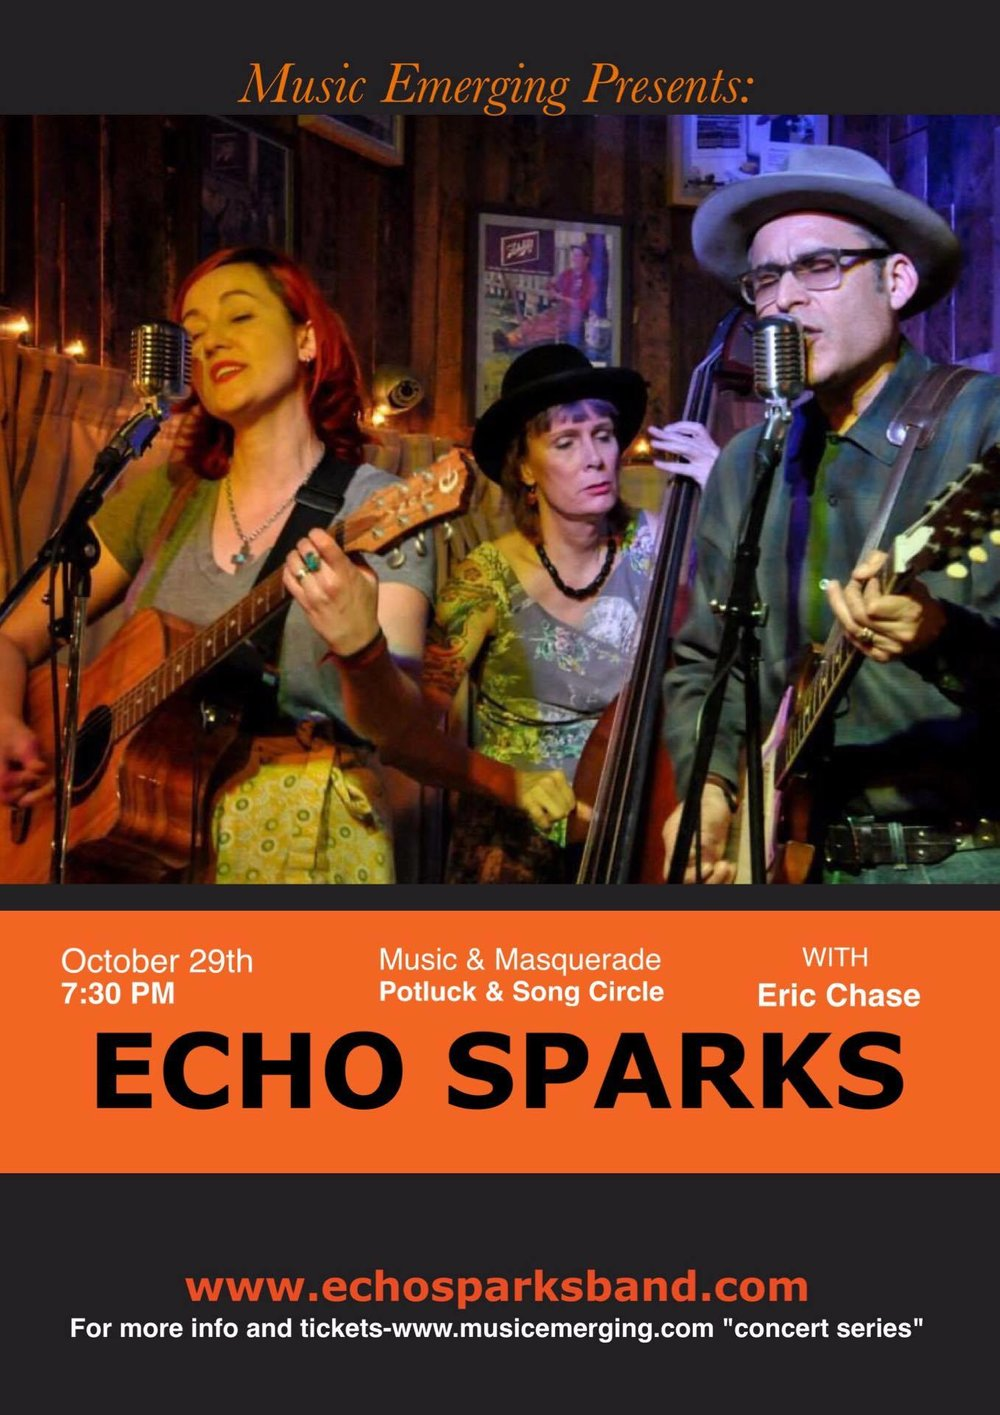 "Music Emerging  presents the ""Mexifolkabilly"" of Echo Sparks-Join us for a fun potluck and masquerade house concert in Atwater Village Los Angeles, with special guest----singer songwriter Eric Chase. Concert will be BYOB and a dish; some food will be provided, but bringsomething to share if you can. Masquerade party-so wear a cool mask-preferably a half mask so we can see your beautiful face (no Trump masks please) Some masks will be available if you want one....Concert will take place at the residence of artist  Robert Soffian . Song circle will follow if you would like to bring an instrument. Once you purchase your ticket, within 24 hours you will be emailed the address. Street parking is around residence with the most street parking on Tyburn Street. Any questions; email: musicemerging@gmail.com and you can visit our website at :www.musicemerging,com ""concert series""   Ticket link:  MUSIC EMERGING PRESENTS: ECHO SPARKS WITH SPECIAL GUEST ERIC CHASE      More about the artists:   ECHO SPARKS   ""Echo Sparks is an Americana band from Orange County, California. They are inspired by the quiet back roads of California's farmlands and desolate corners, which they translate into harmonies that break hearts and tunes that move feet. They perform frequently to the delight of audiences around Southern California and beyond. Their latest album release, ""Ghost Town Girl"" has had  radio play  across North America and has garnered  rave reviews  (including two write-ups in No Depression).  Echo Sparks is led by primary songwriter DA Valdez on vocals and lead guitar. Colleen Kinnick shares the lead vocal position and plays rhythm guitar. Cindy Ballreich provides support on upright bass and mandolin. The trio's wide range of influences allows them to put a refreshing perspective on roots music that is enjoyed by music fans everywhere.""   ERIC CHASE   By the middle of high school Eric was playing bass for a local band called the  Gross National Product . It was this band that gave him his first taste of the exhilaration only successful performers know, as the GNP broke out of South Pasadena, California and began playing in nightclubs around the Los Angeles area.  Recollections among the band members vary somewhat, it being the 60's and all. After two years in the GNP, the quintessential ""Opening Act"", the United States Selective Service System led Eric to a fateful decision, to quit the band, and to remain instead a full-time college student in order to postpone his tour of duty, which he is still actively doing. Somewhat broken-hearted at seeing his performer's dream die too soon, he turned to songwriting. He specialized, at the outset, in socially relevant songs of protest, outrage, and such. But a hopeless romantic will not remain outraged indefinitely, and love crept into the growing stack of songs soon enough.  For the next forty years Eric continued to write songs, forgoing live performance almost entirely. That, dear readers, is now changing. Having achieved everything he could as a working stiff, Eric has undertaken this new journey, and he welcomes you to join him. Please enjoy the songs from the   Forty Years   sessions, recorded in 2007-2008, and most especially, the new release   In Grace Again  . Eric hopes to see you on the road someday soon!"